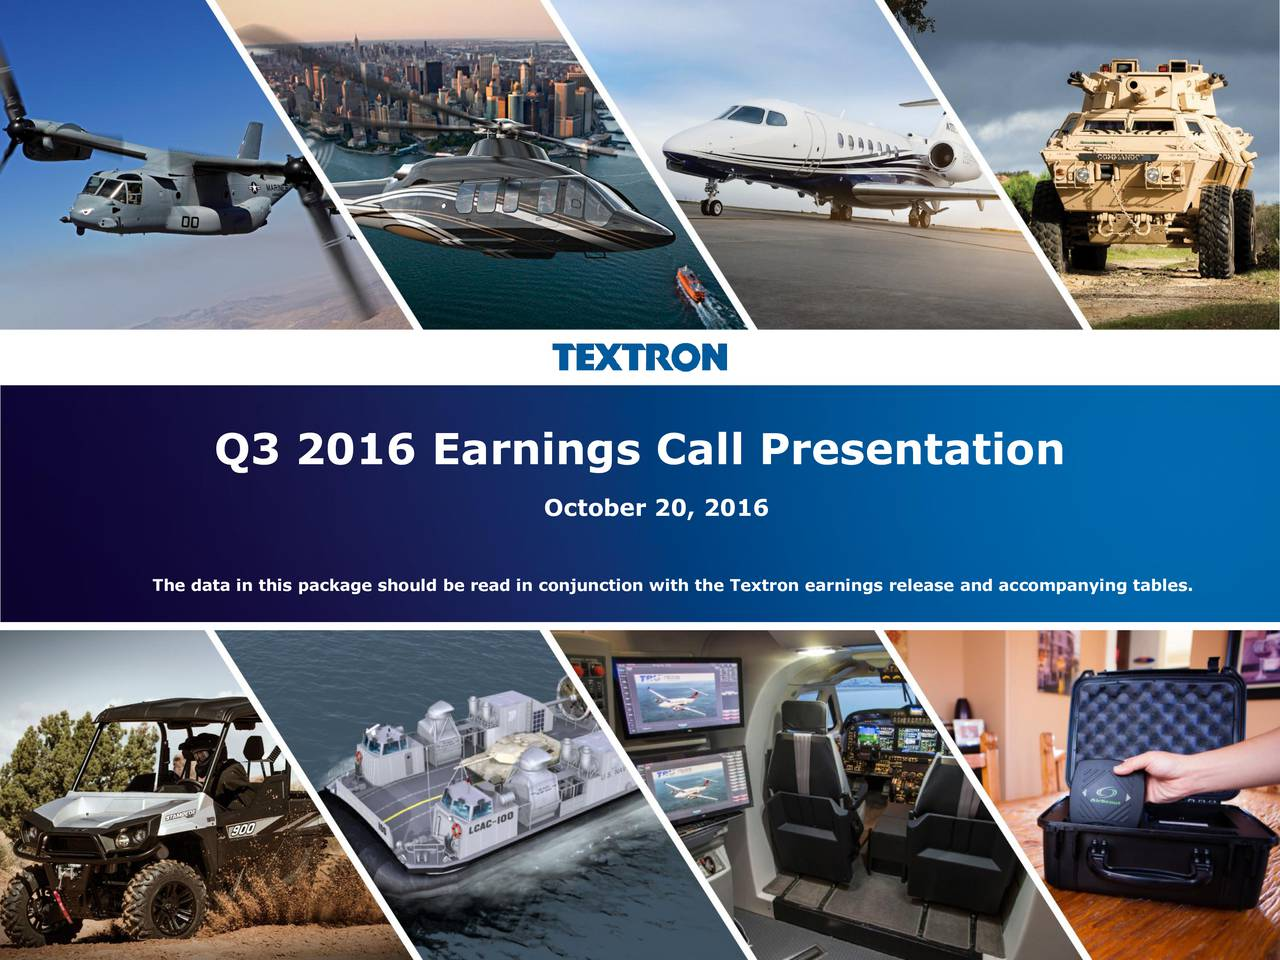 October 20, 2016 The data in this package should be read in conjunction with the Textron earnings release and accompanying tables. Textron Inc. Q3 2016 Earnings Call Presentation; October 20, 2016 1